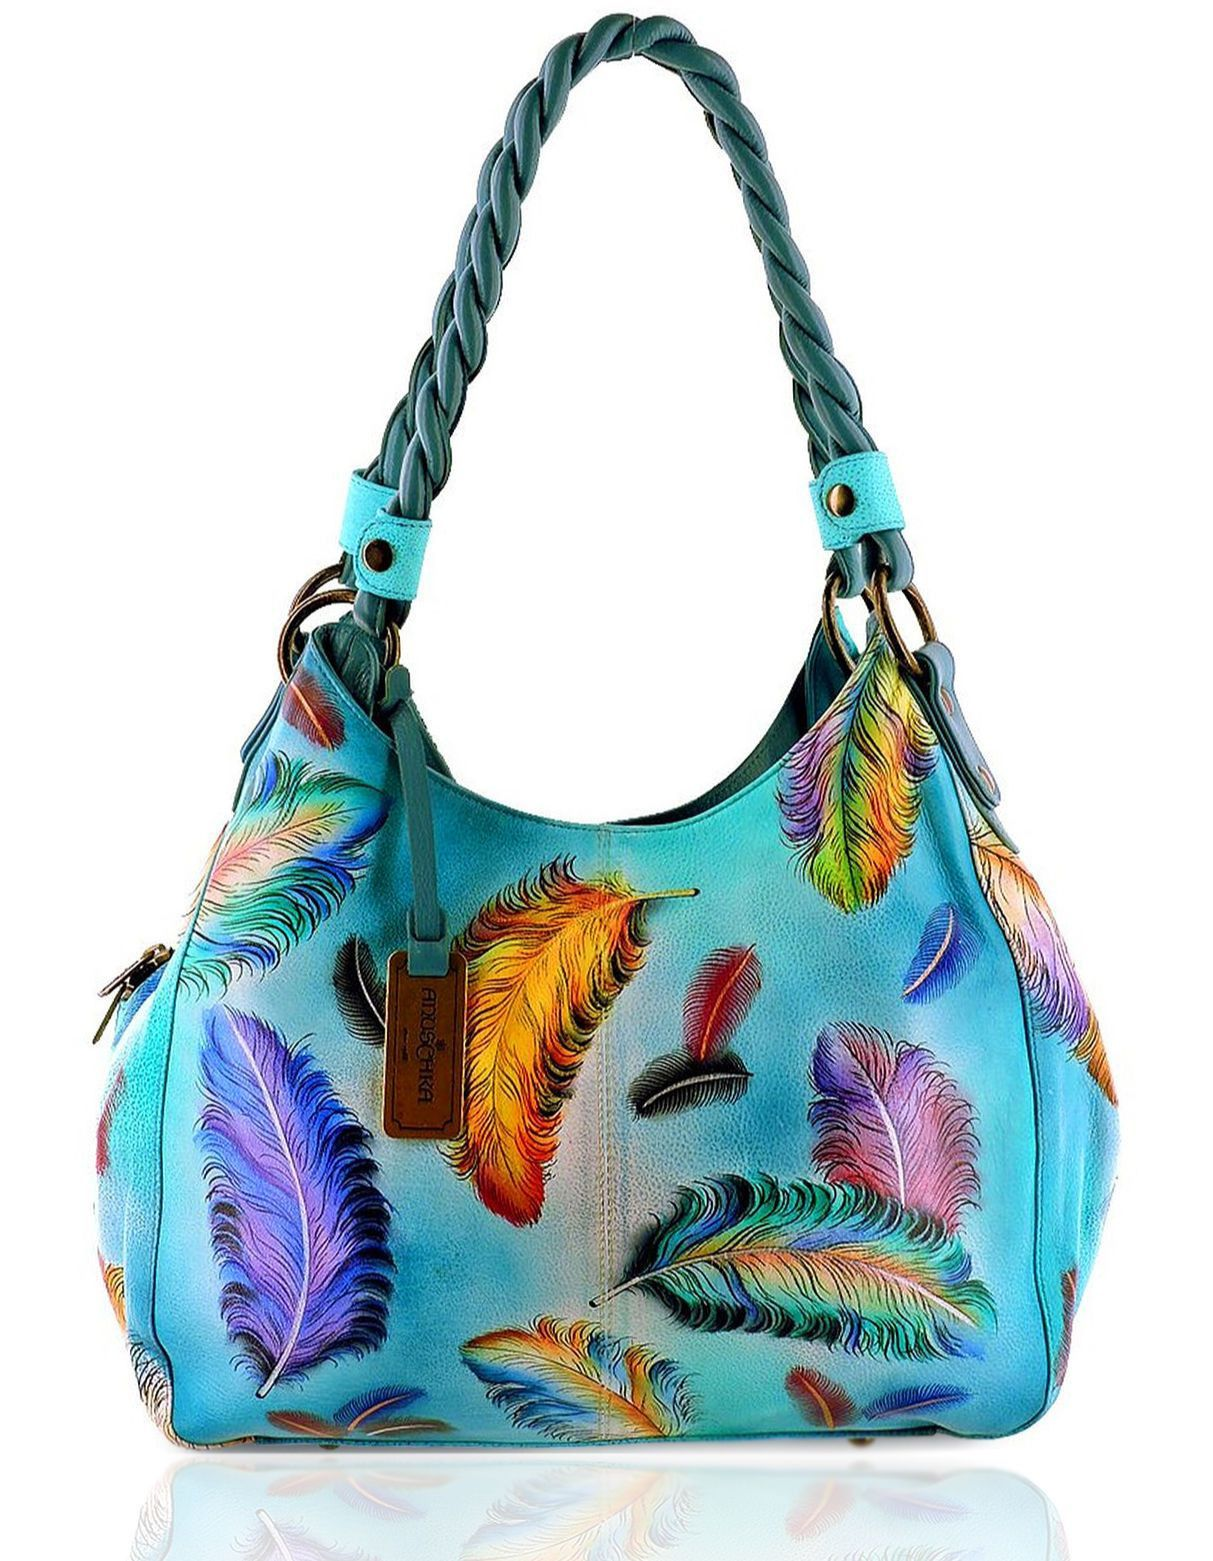 9c9dae02e9 Anuschka™ 3- Compartment Leather Shopper w Braided Handles-Floating Feathers